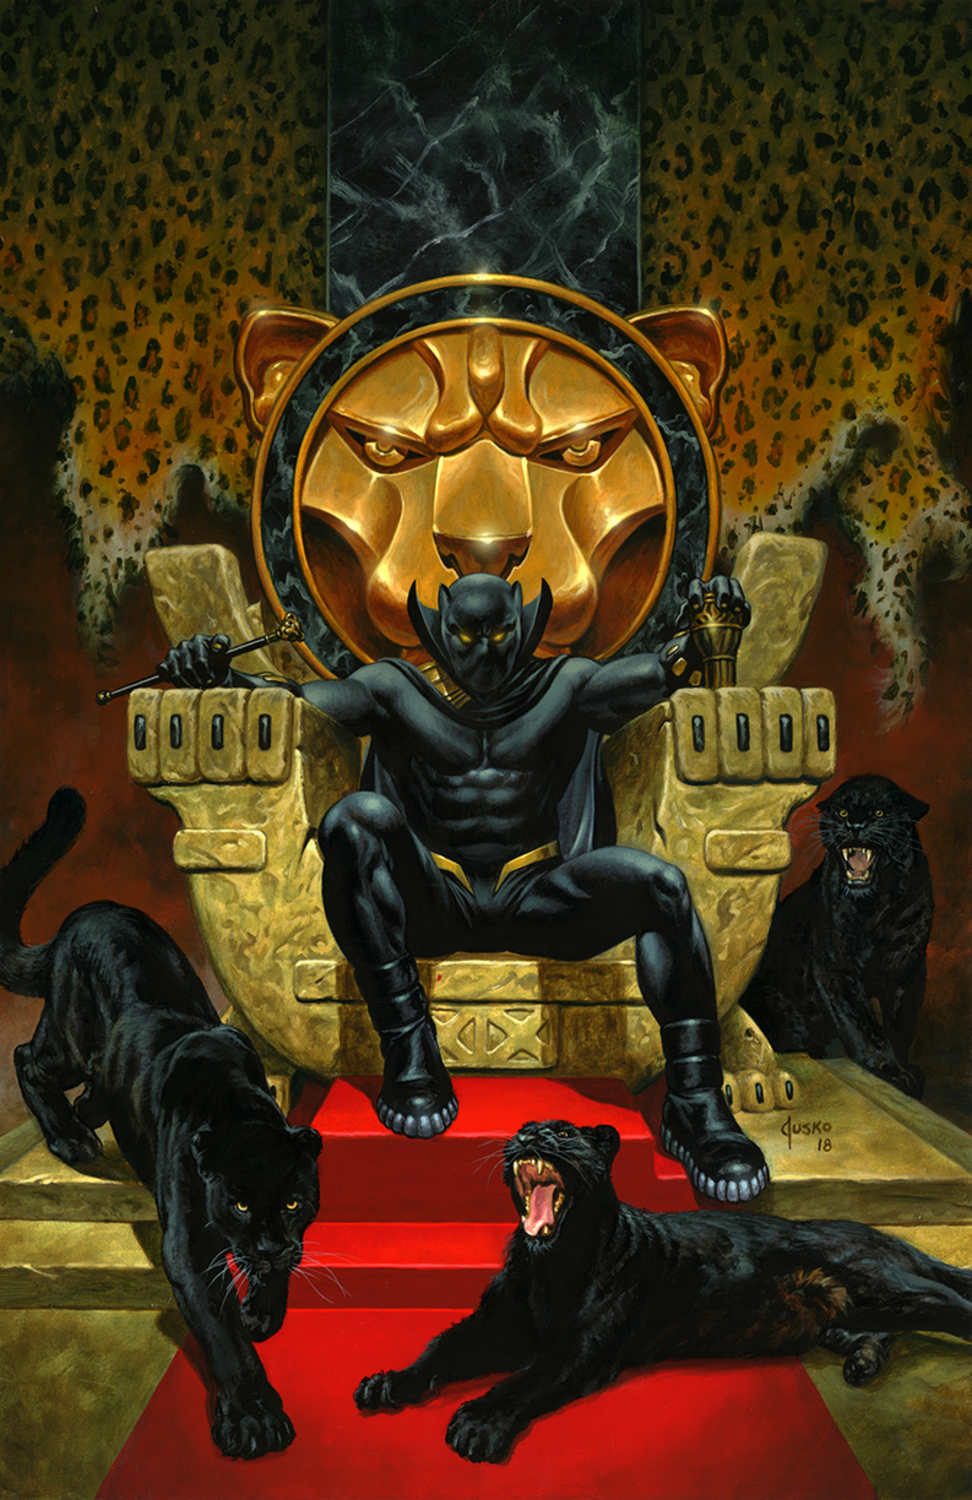 BLACK PANTHER Artwork by Joe Jusko